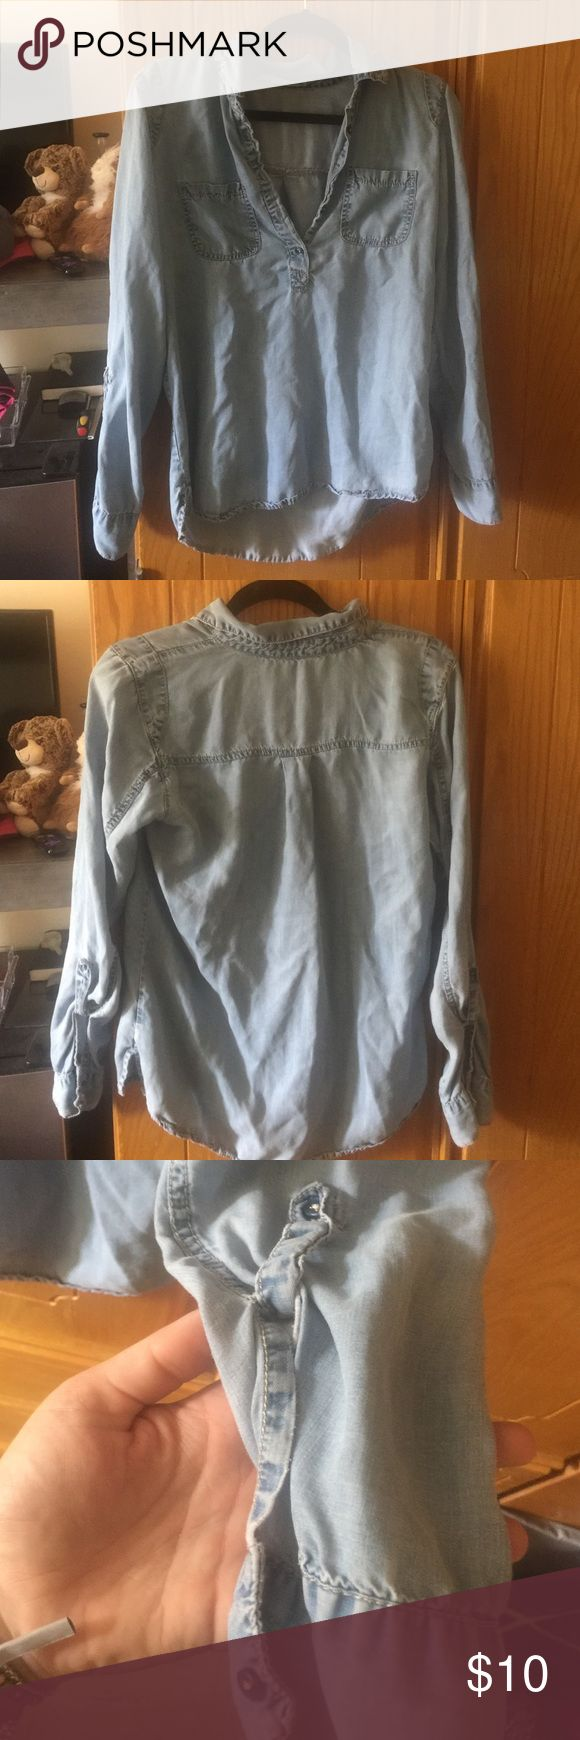 Light weight denim long sleeve top Size m. No flaws Maurices Tops